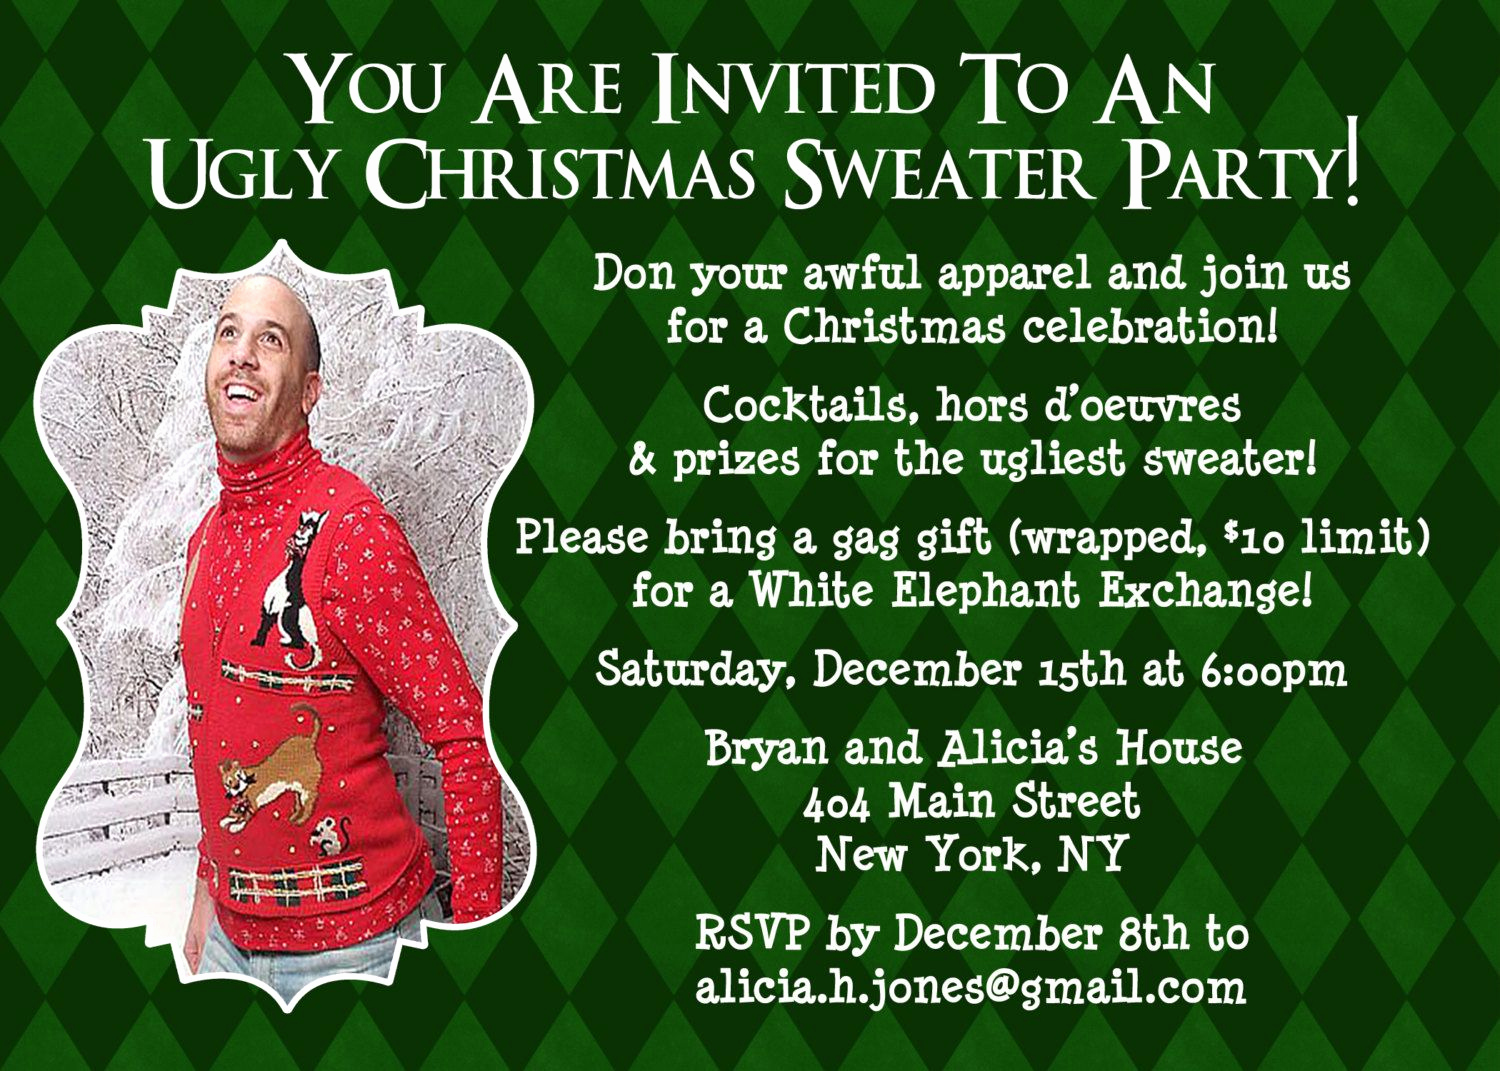 Ugly Sweater Invitation Ideas Unique Customized Christmas Party Invite Ugly Sweater Party